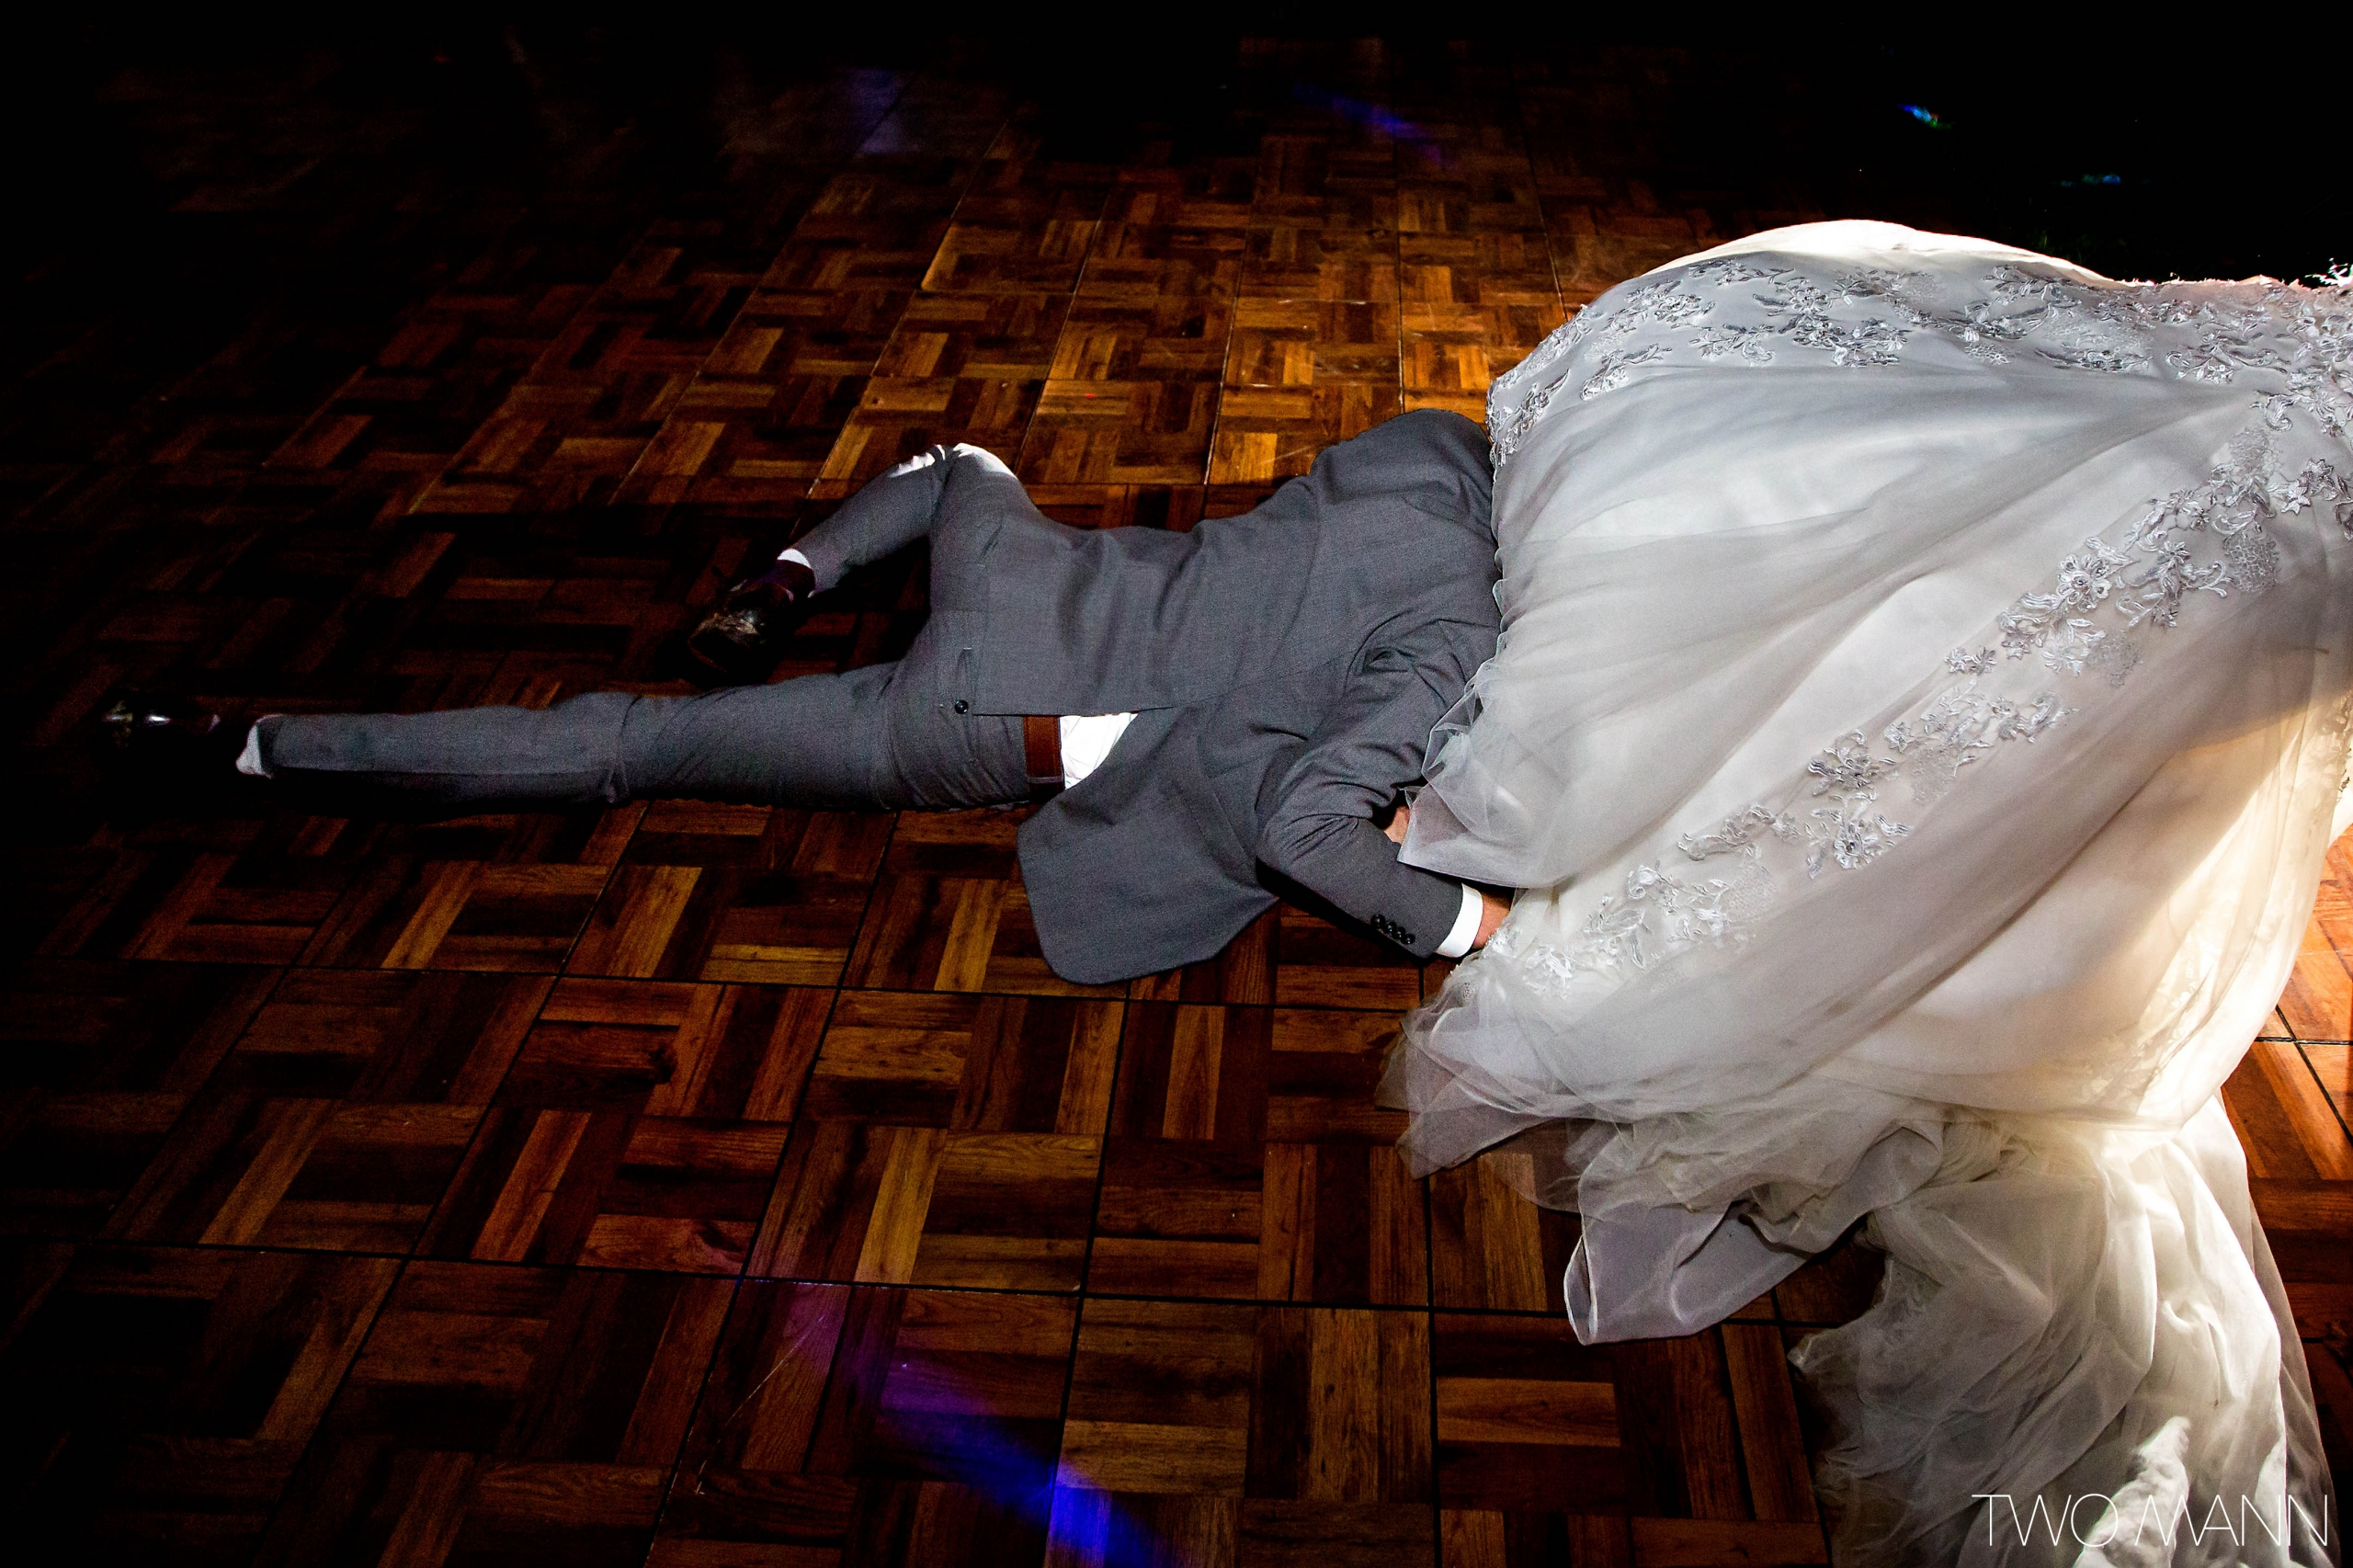 a groom lying on the dance floor with face hiding under bride's dress trains